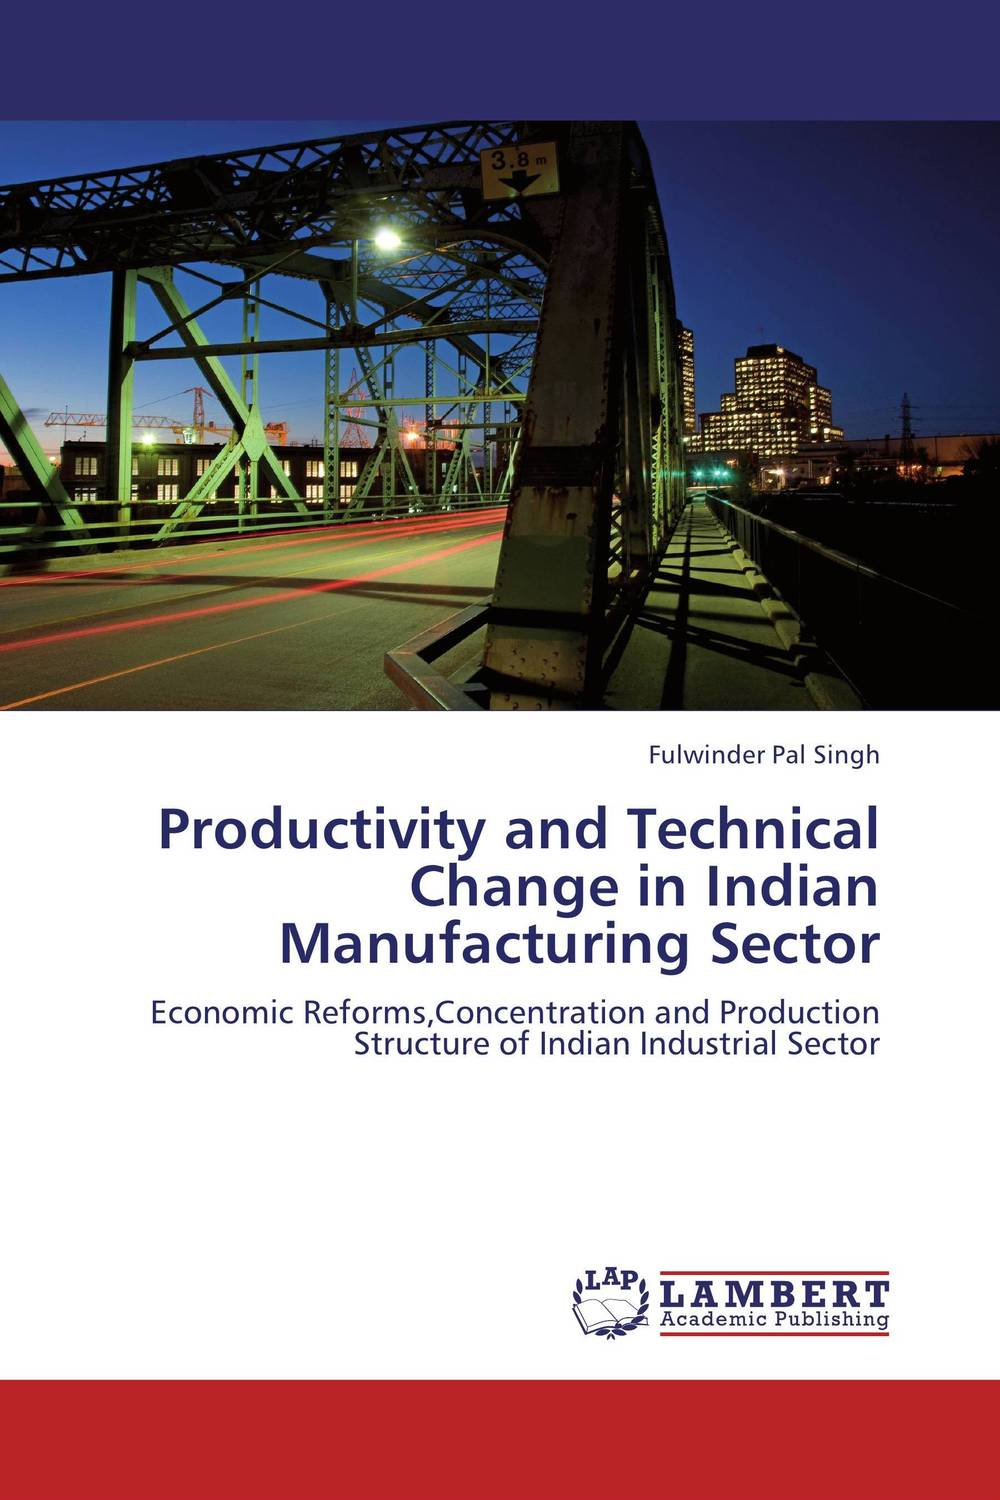 Productivity and Technical Change in Indian Manufacturing Sector marketing and competitiveness of wine sector in republic of macedonia